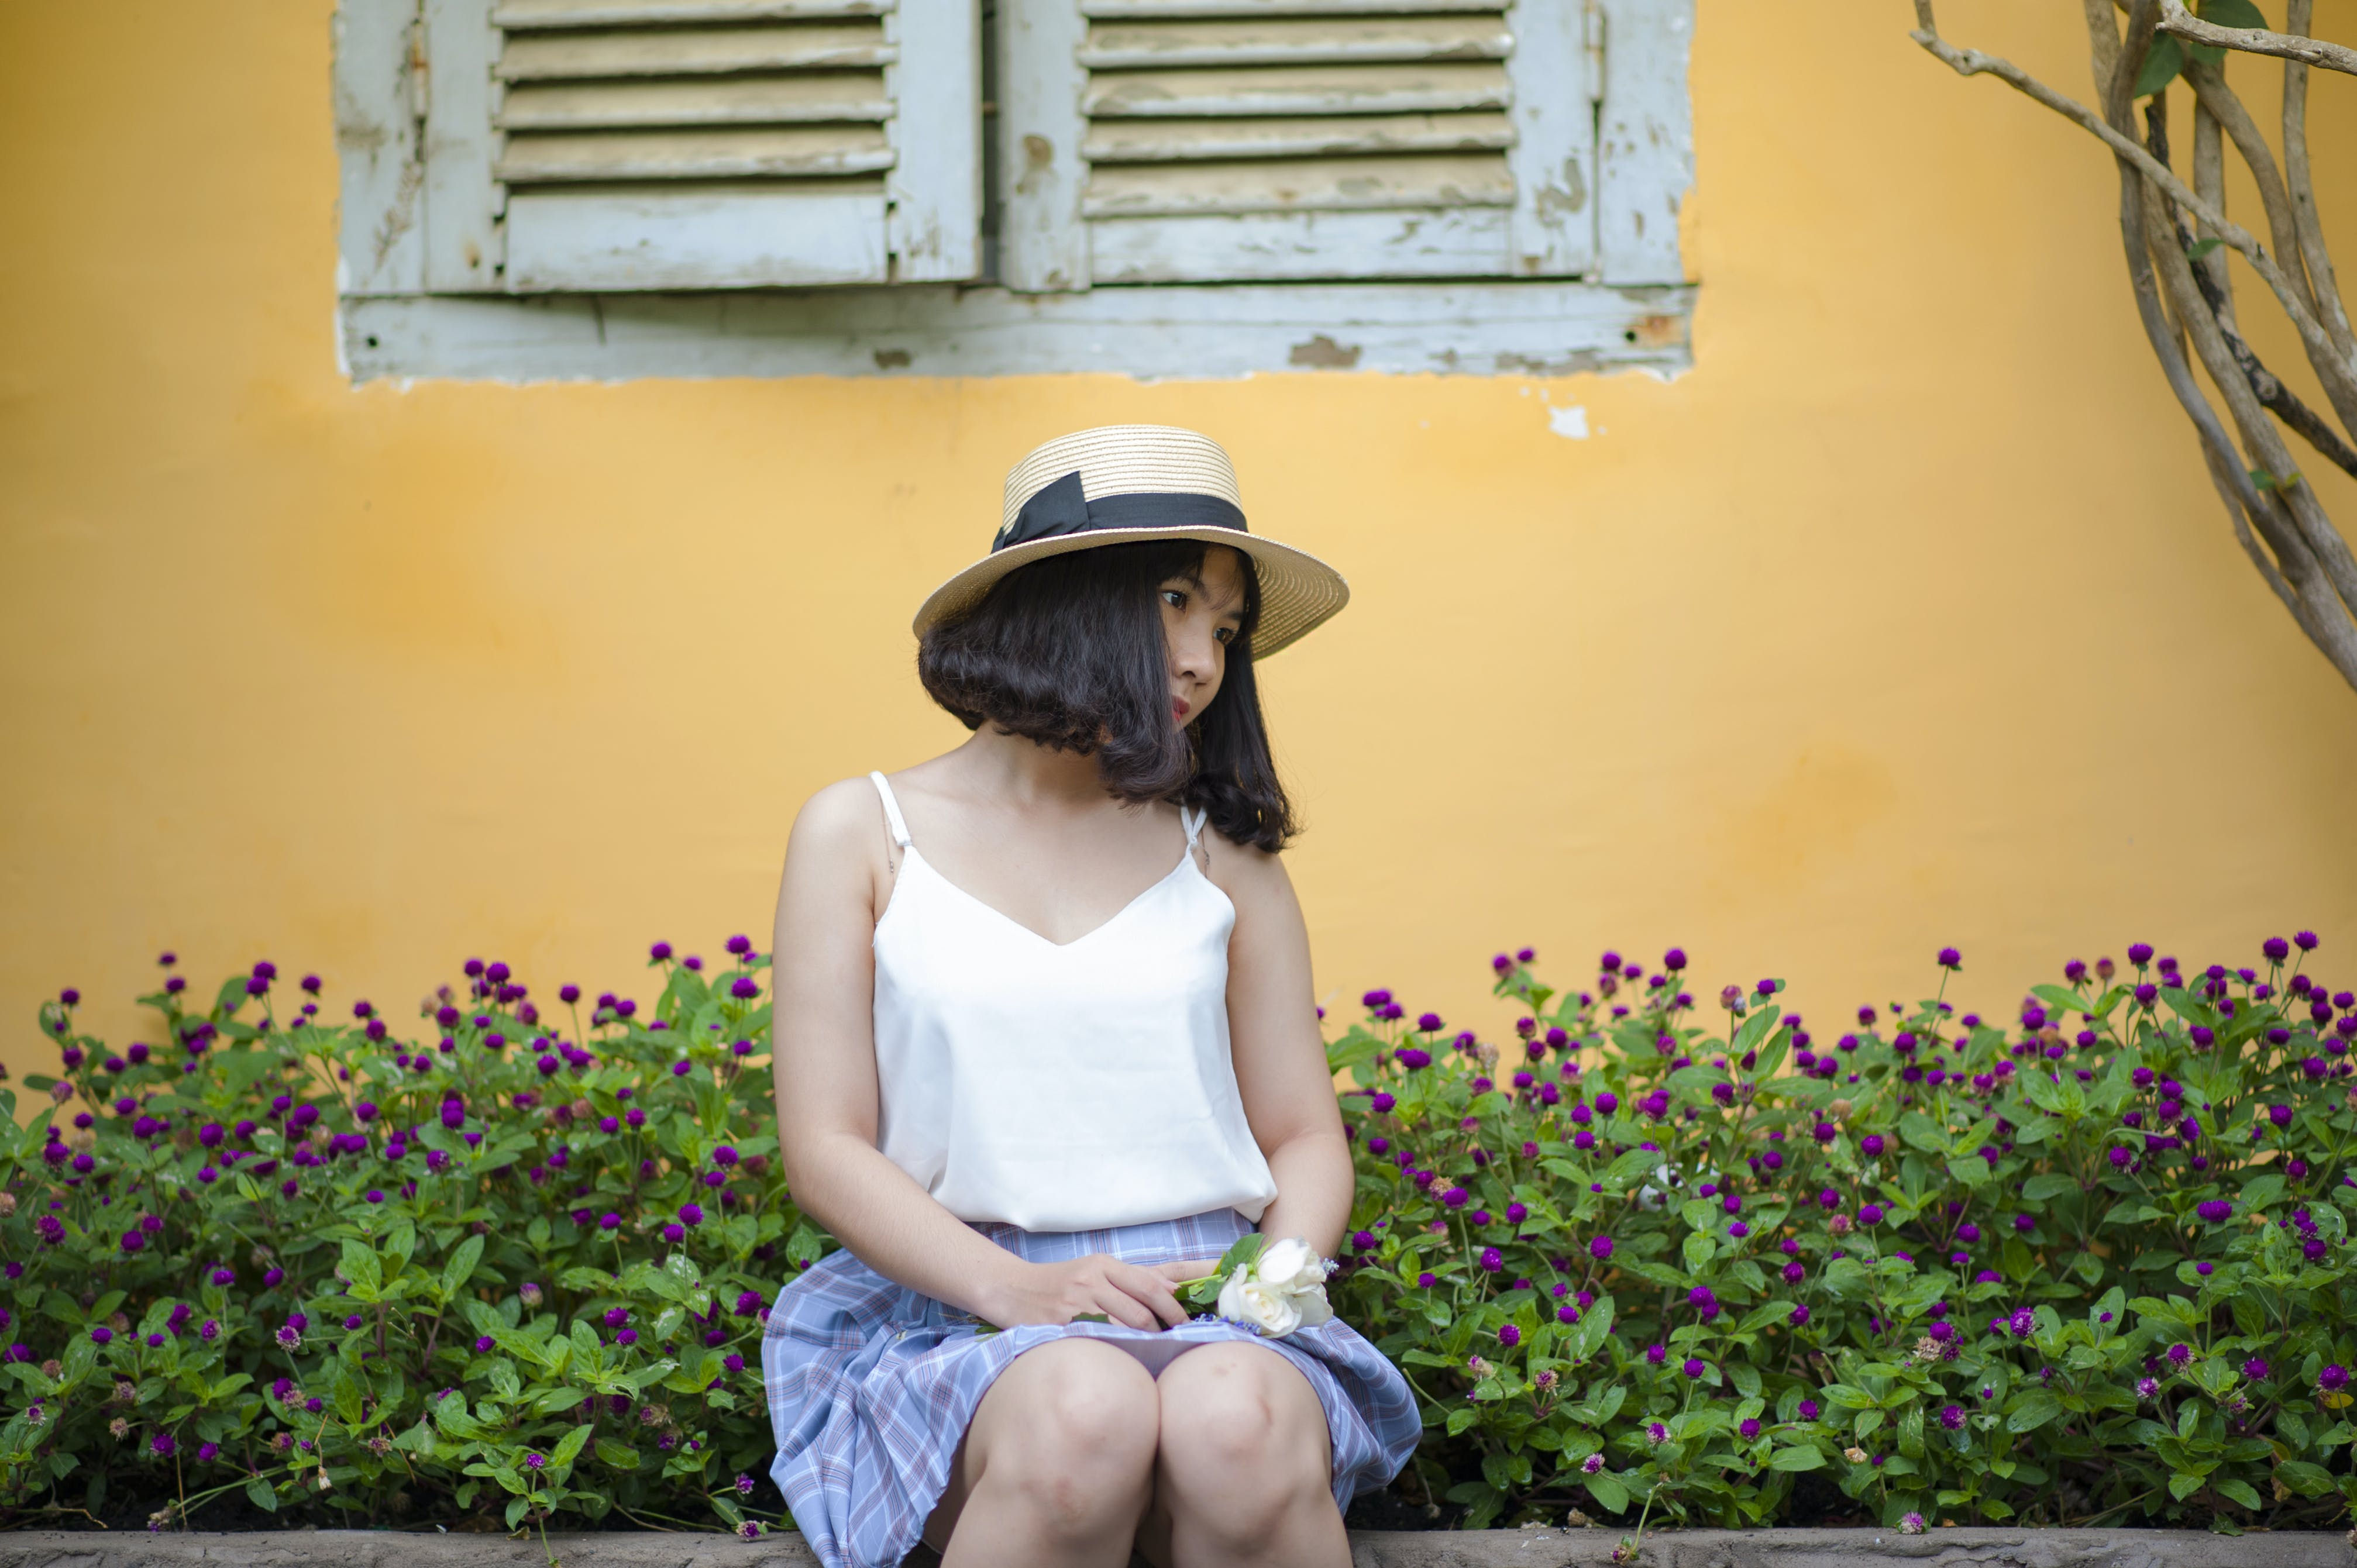 Woman in White Spaghetti Strapped Top With Blue and Purple Plaid Skirt Sitting on Ledge Near Purple Petaled Flower Garden Posing for Photo